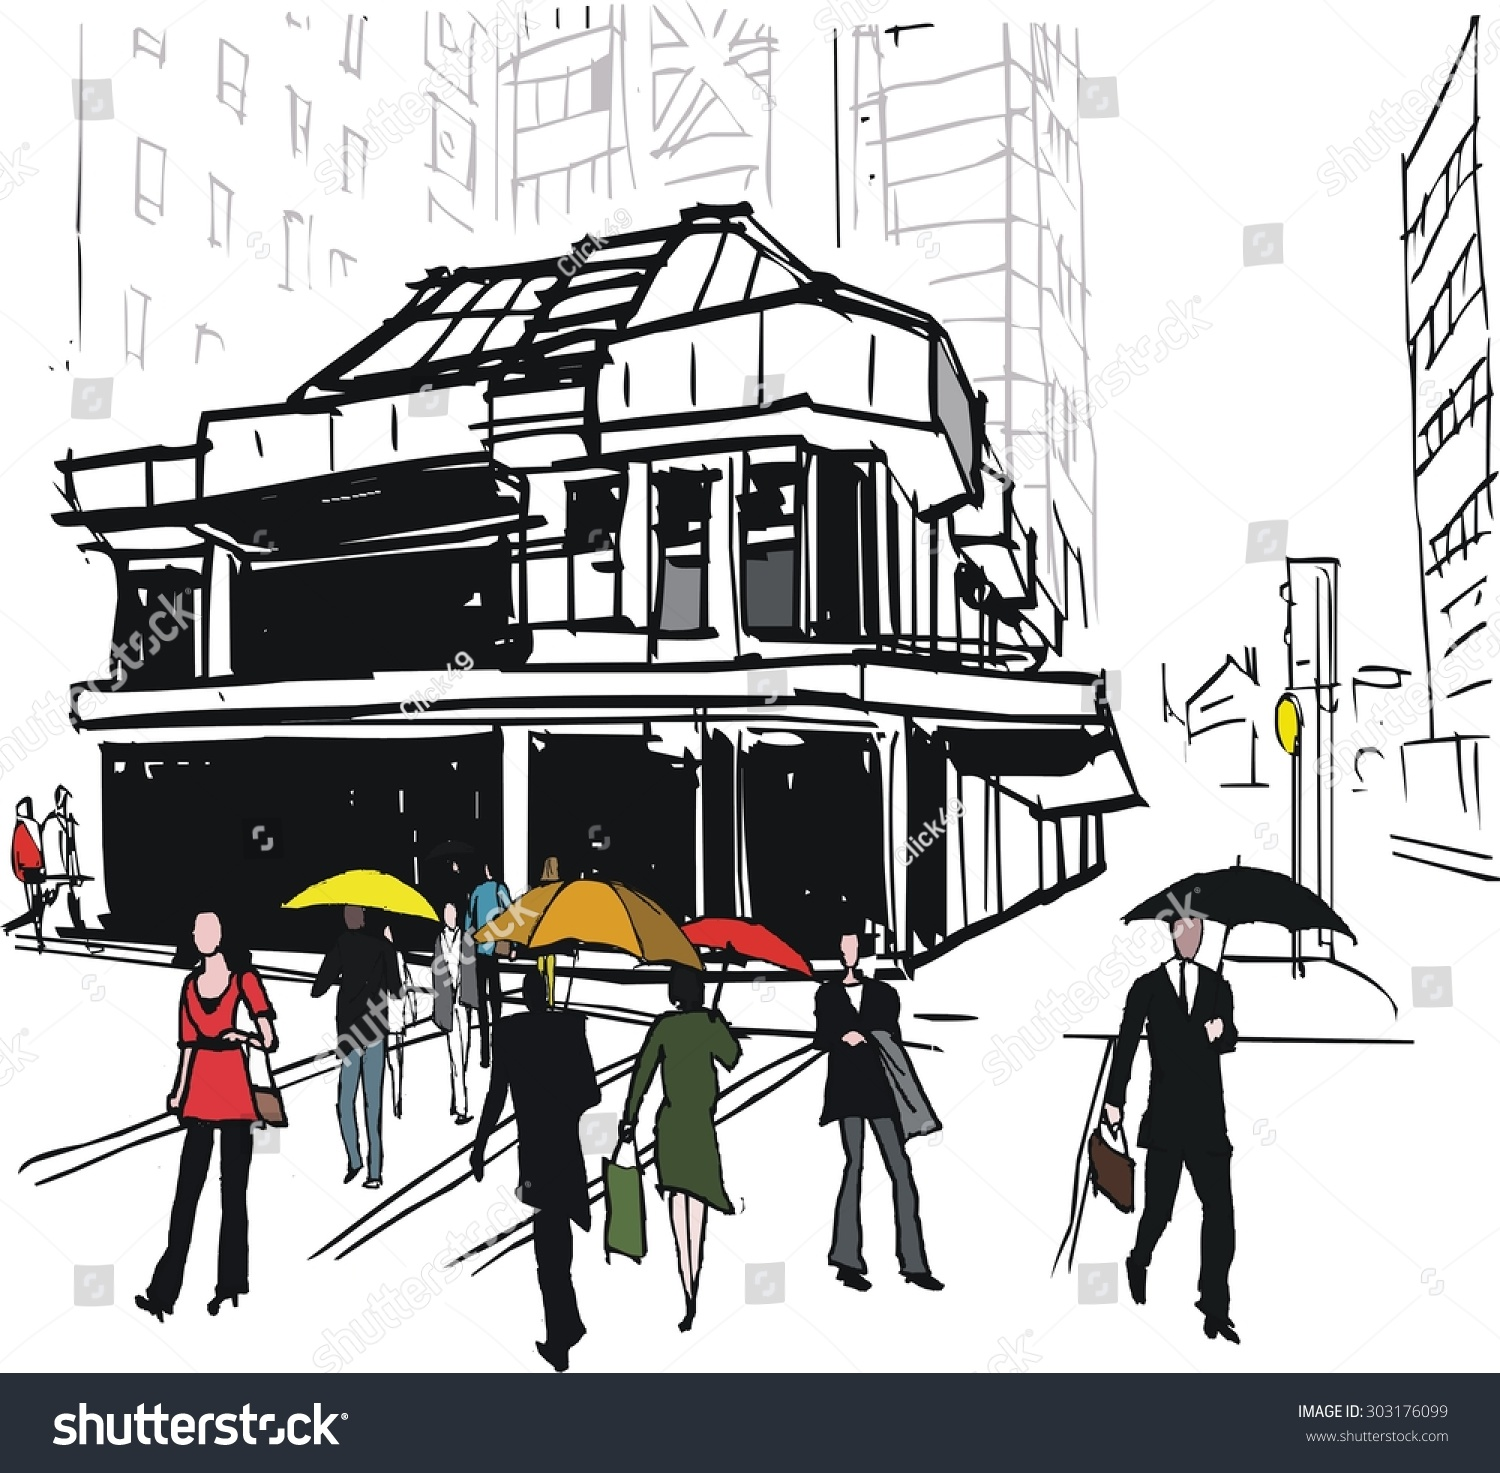 Vector Illustration Of Office Building And Pedestrians In Rain, Wellington  New Zealand